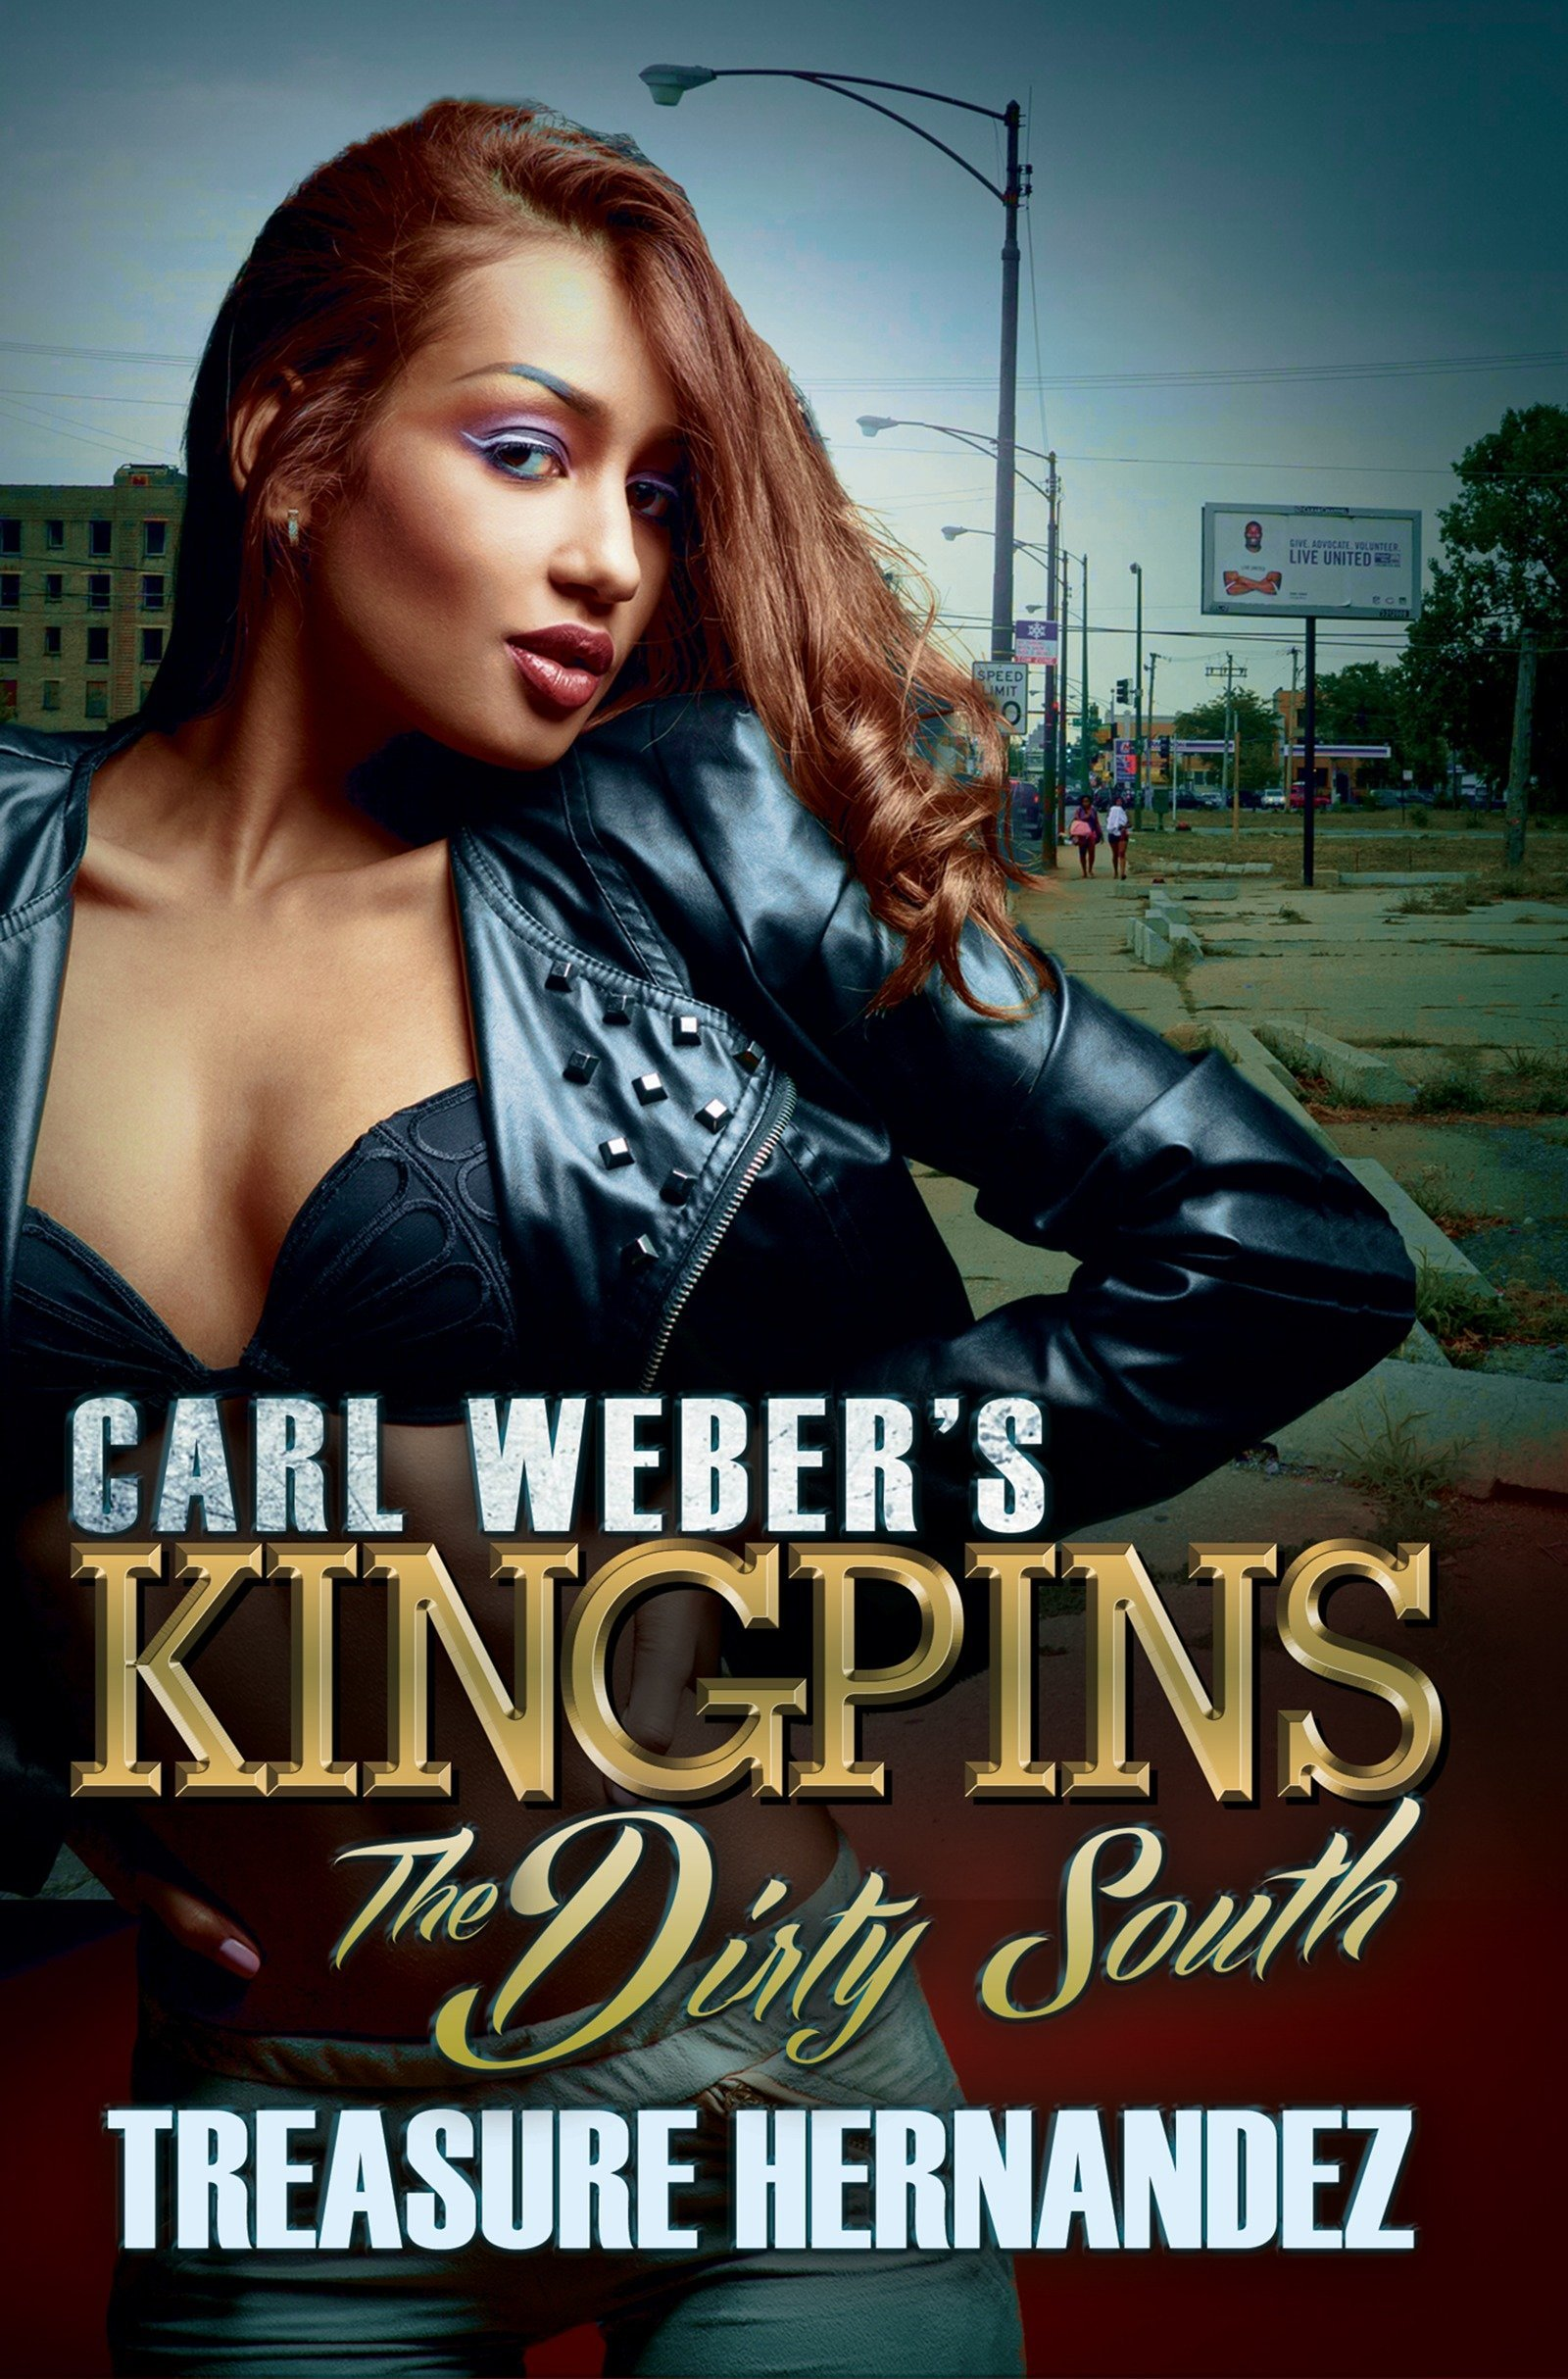 Download Carl Weber's Kingpins: The Dirty South PDF